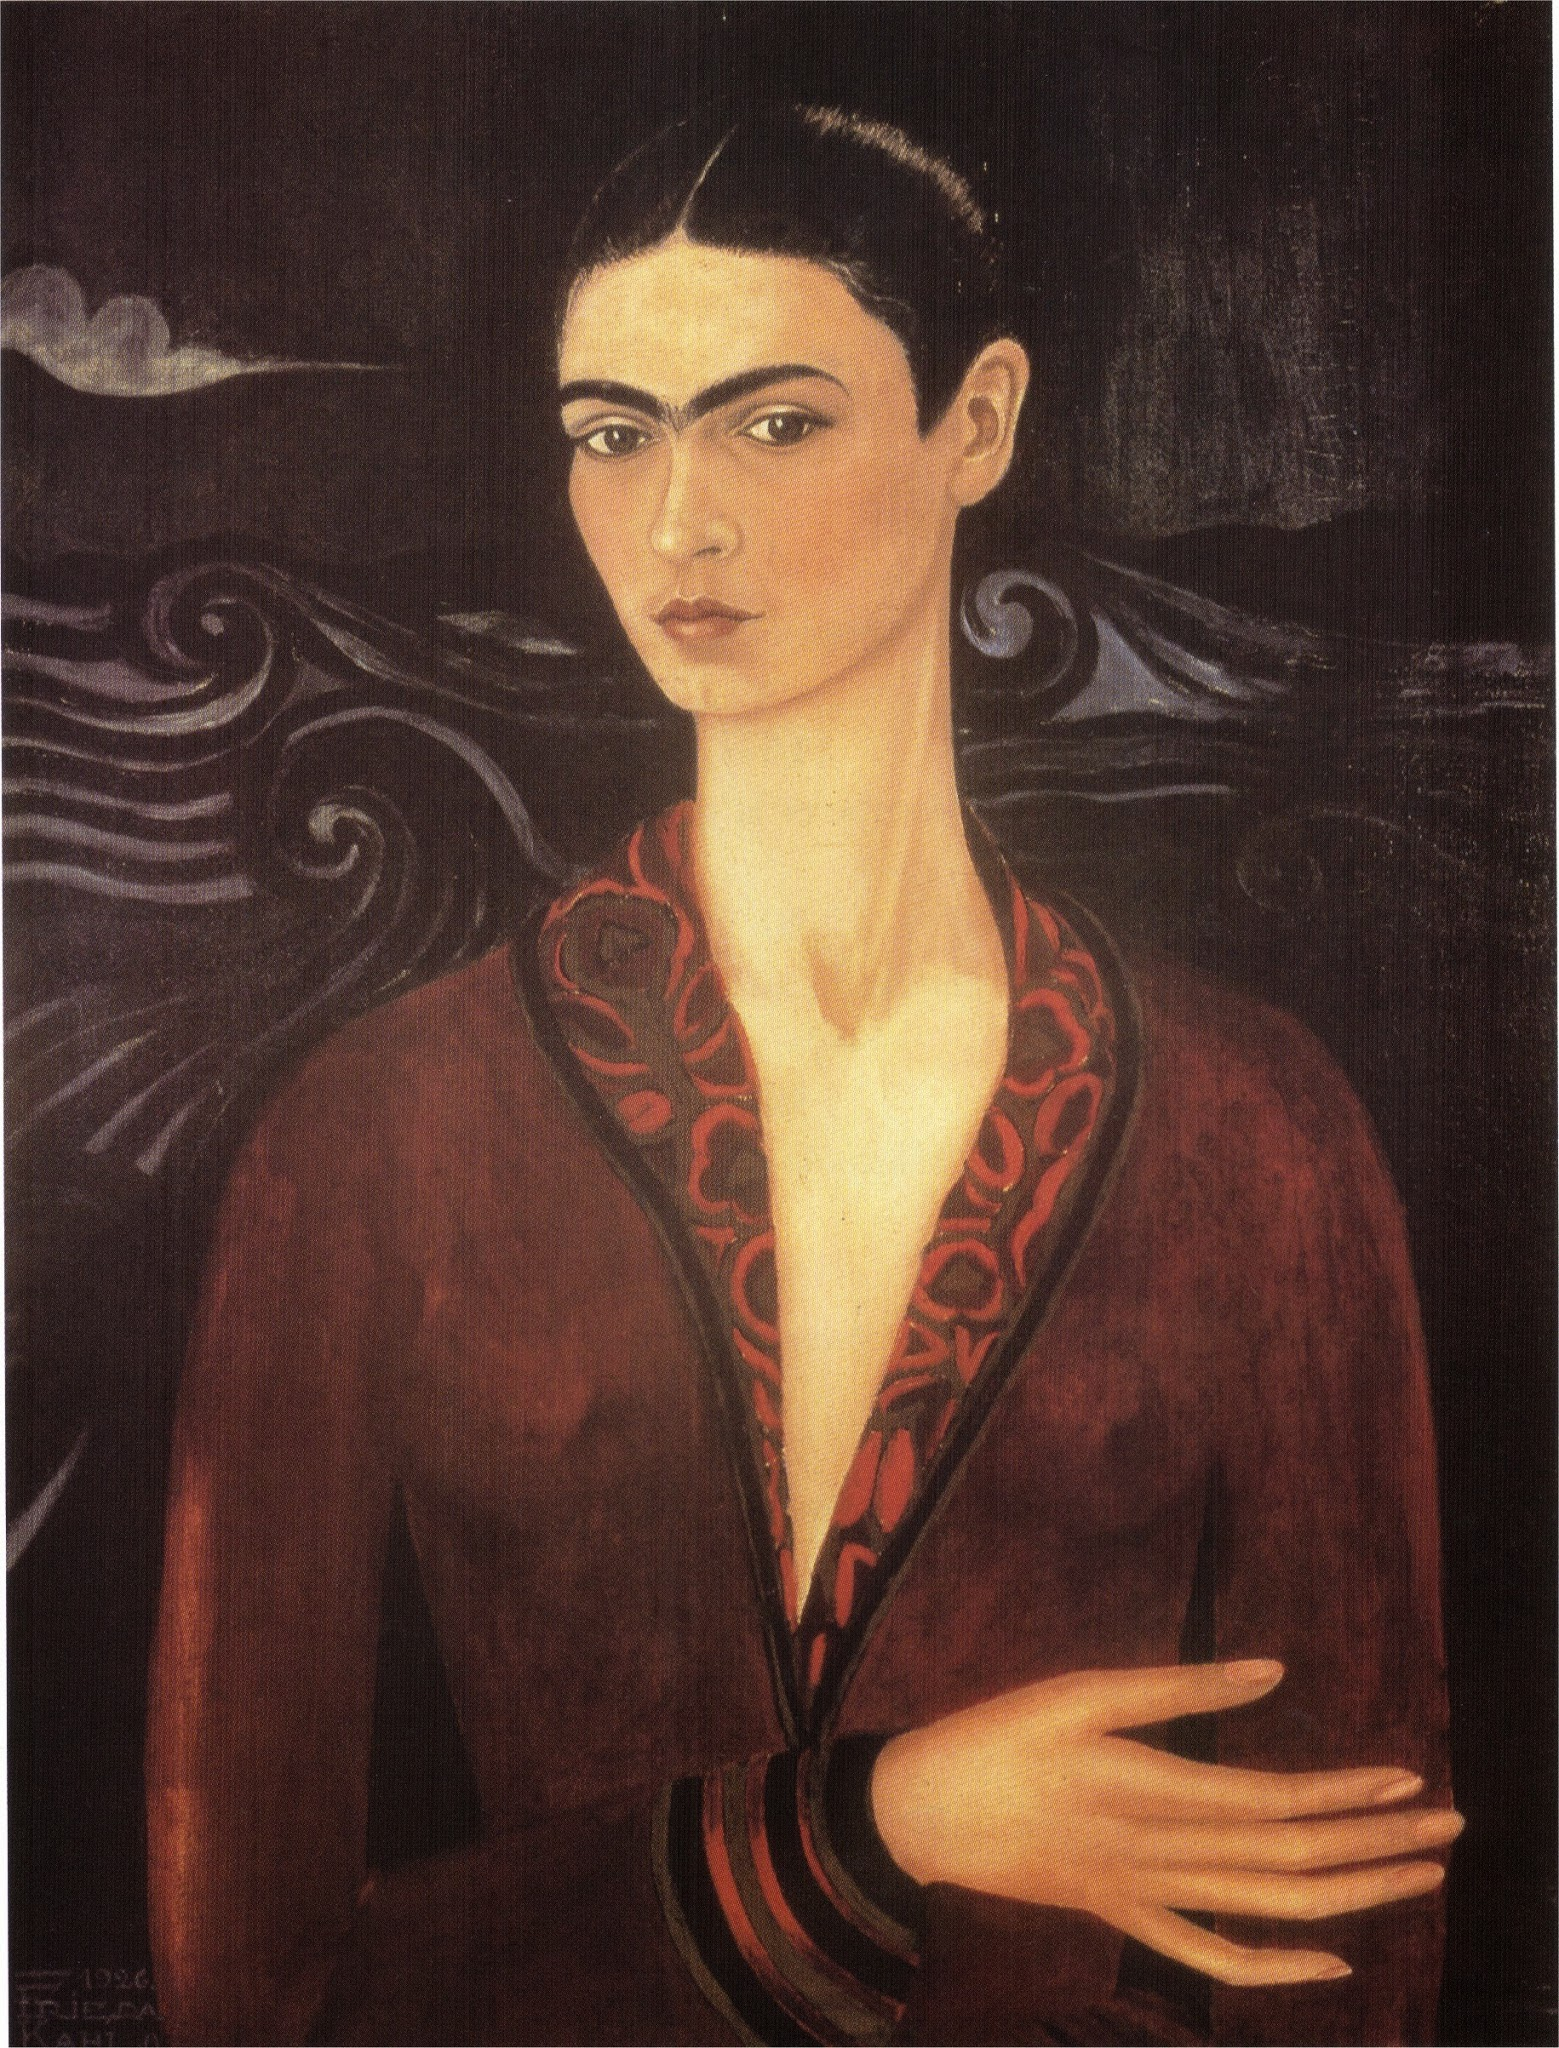 http://2.bp.blogspot.com/-zTHrtmnioGk/Ulgb48Wp1lI/AAAAAAAACdg/FfidI5Tiim0/s3200/Kalho+Frida+-+Self-portrait+in+a+velvet+dress+-+1926.jpg